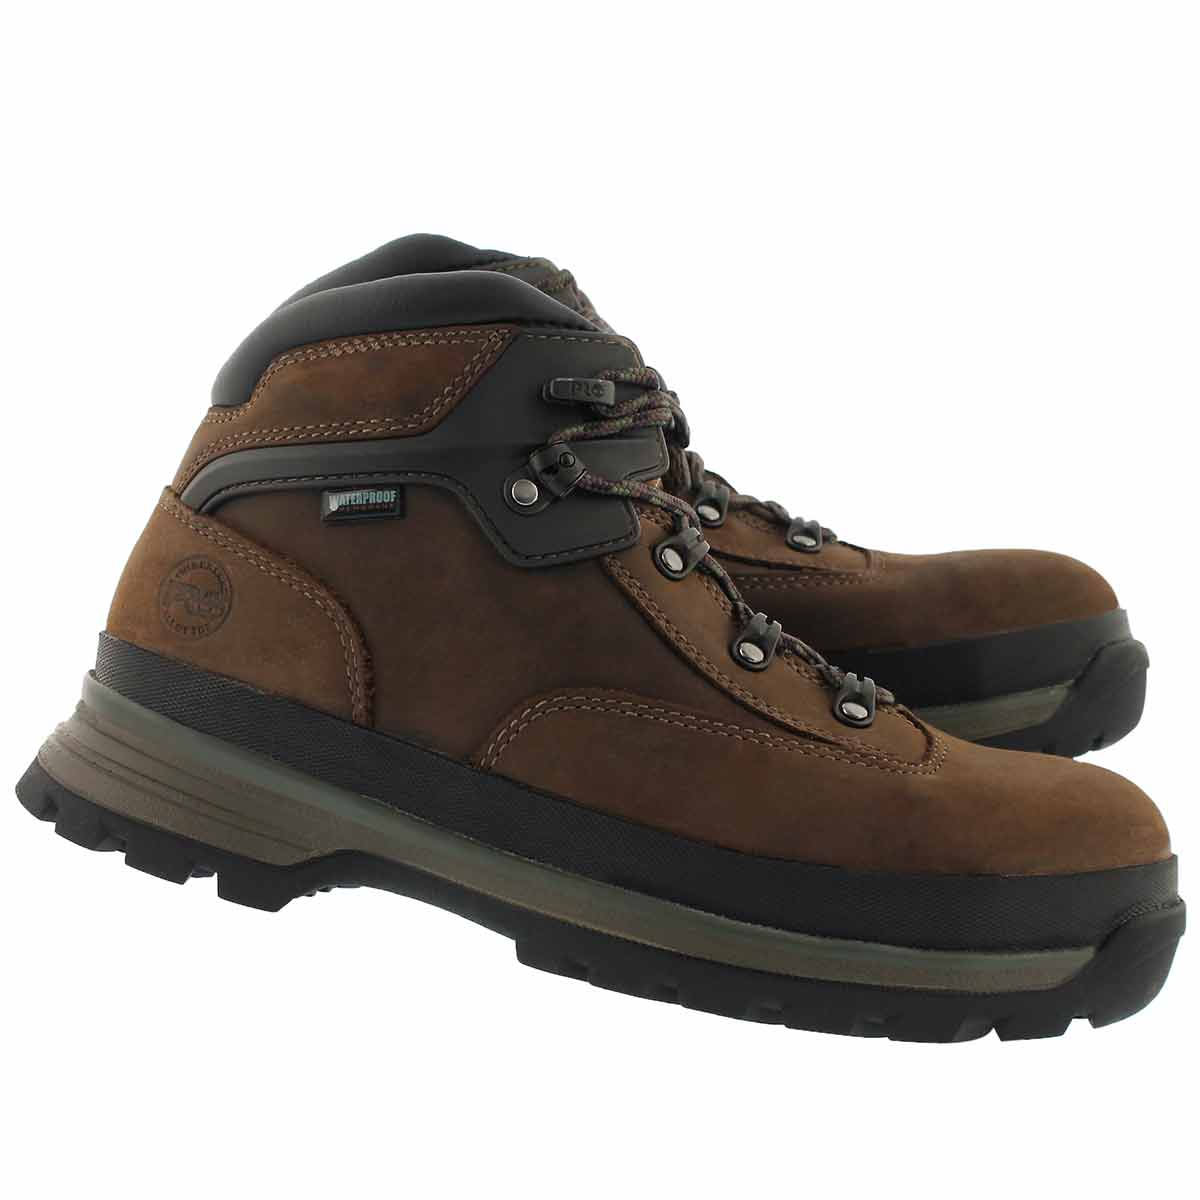 Mns Euro Hiker brown wtpf CSA boot